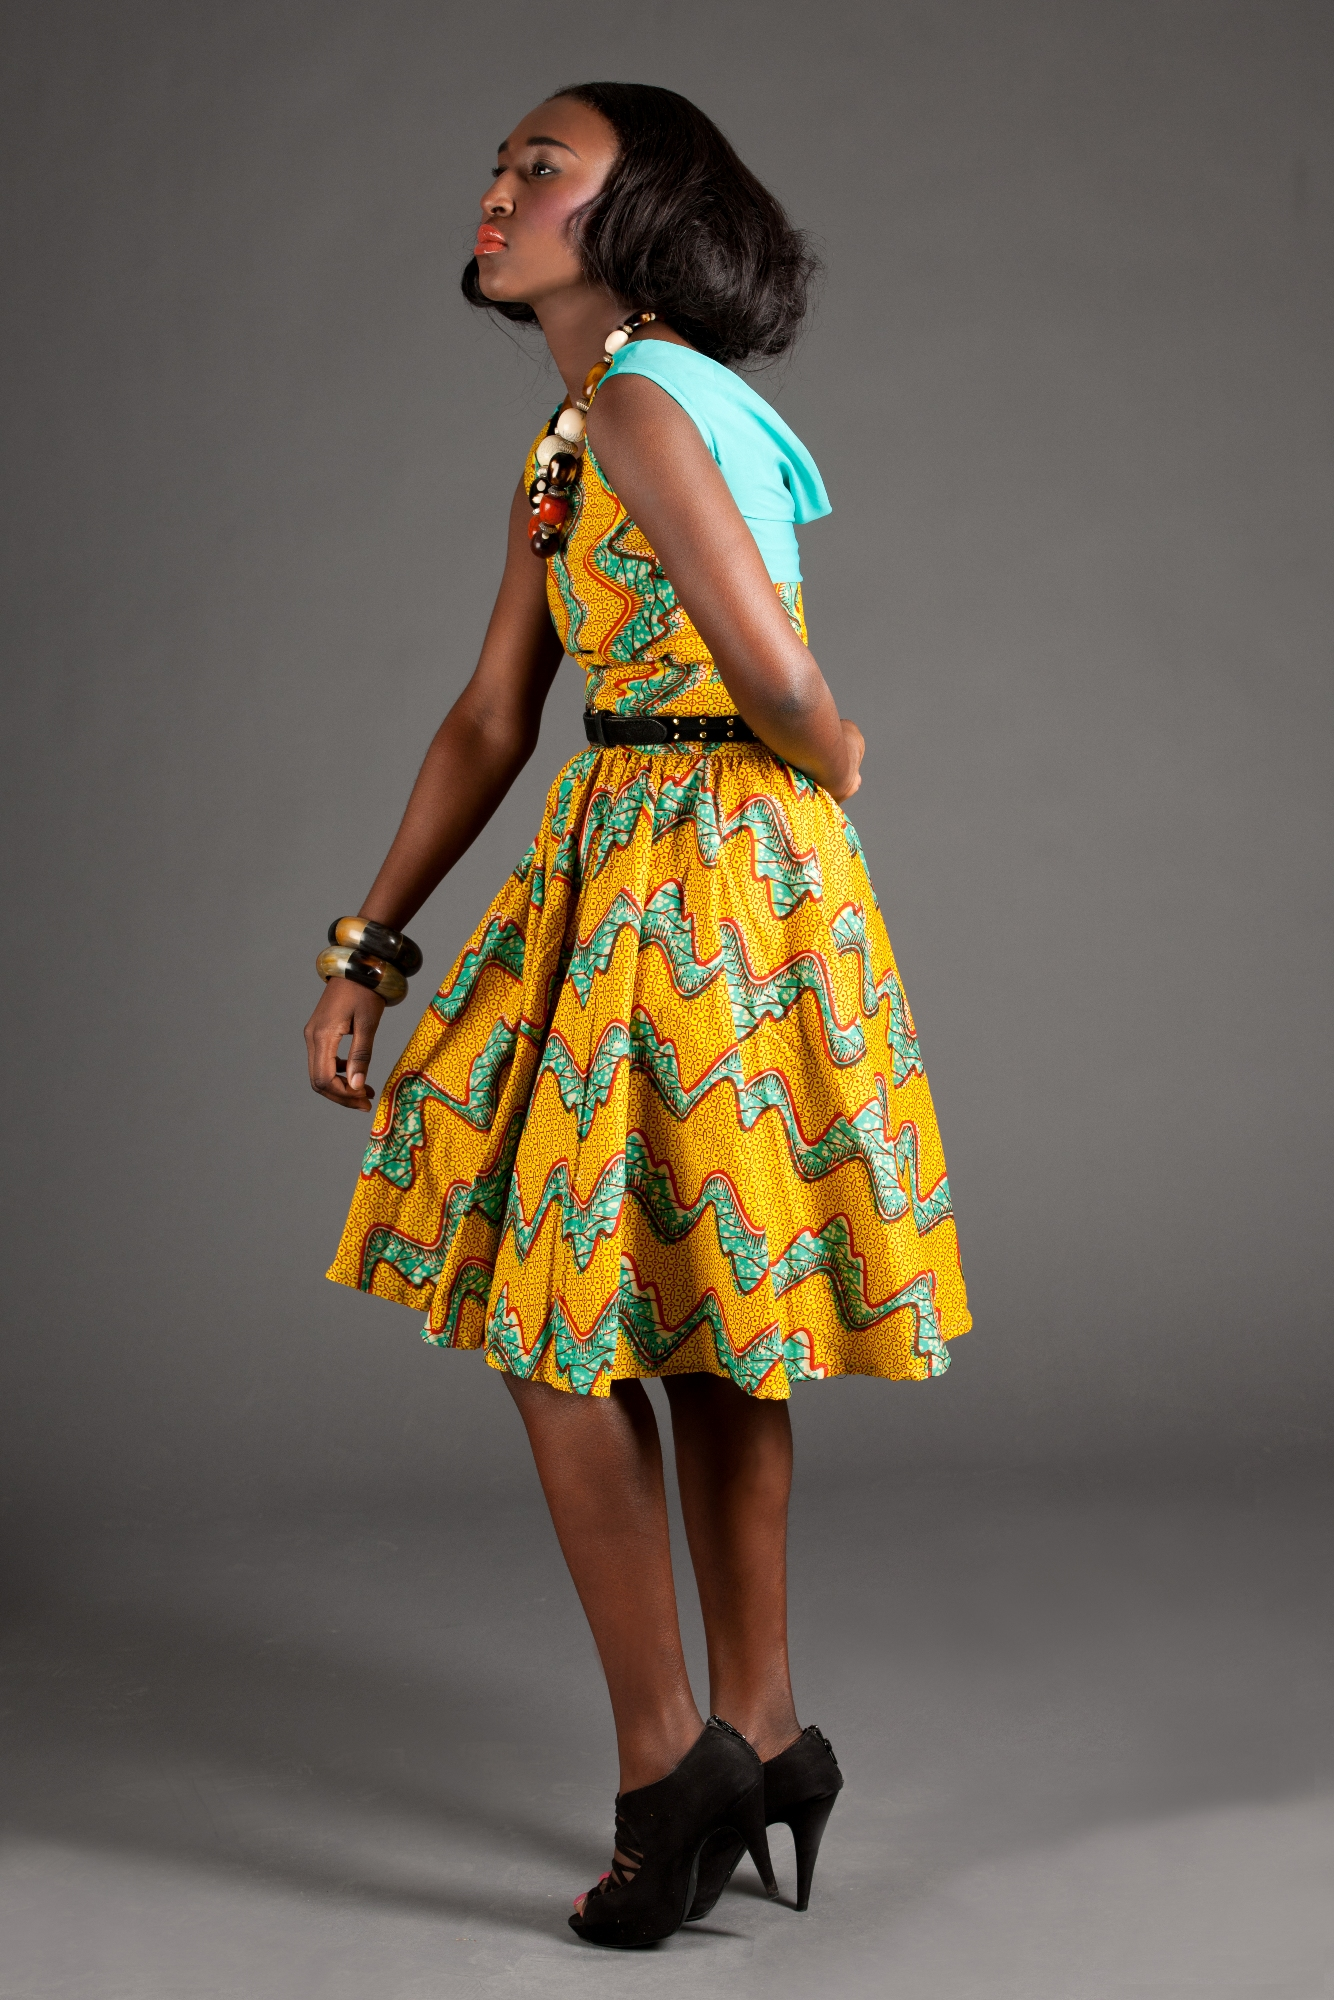 Fashion african dress designs African fashion designs pictures